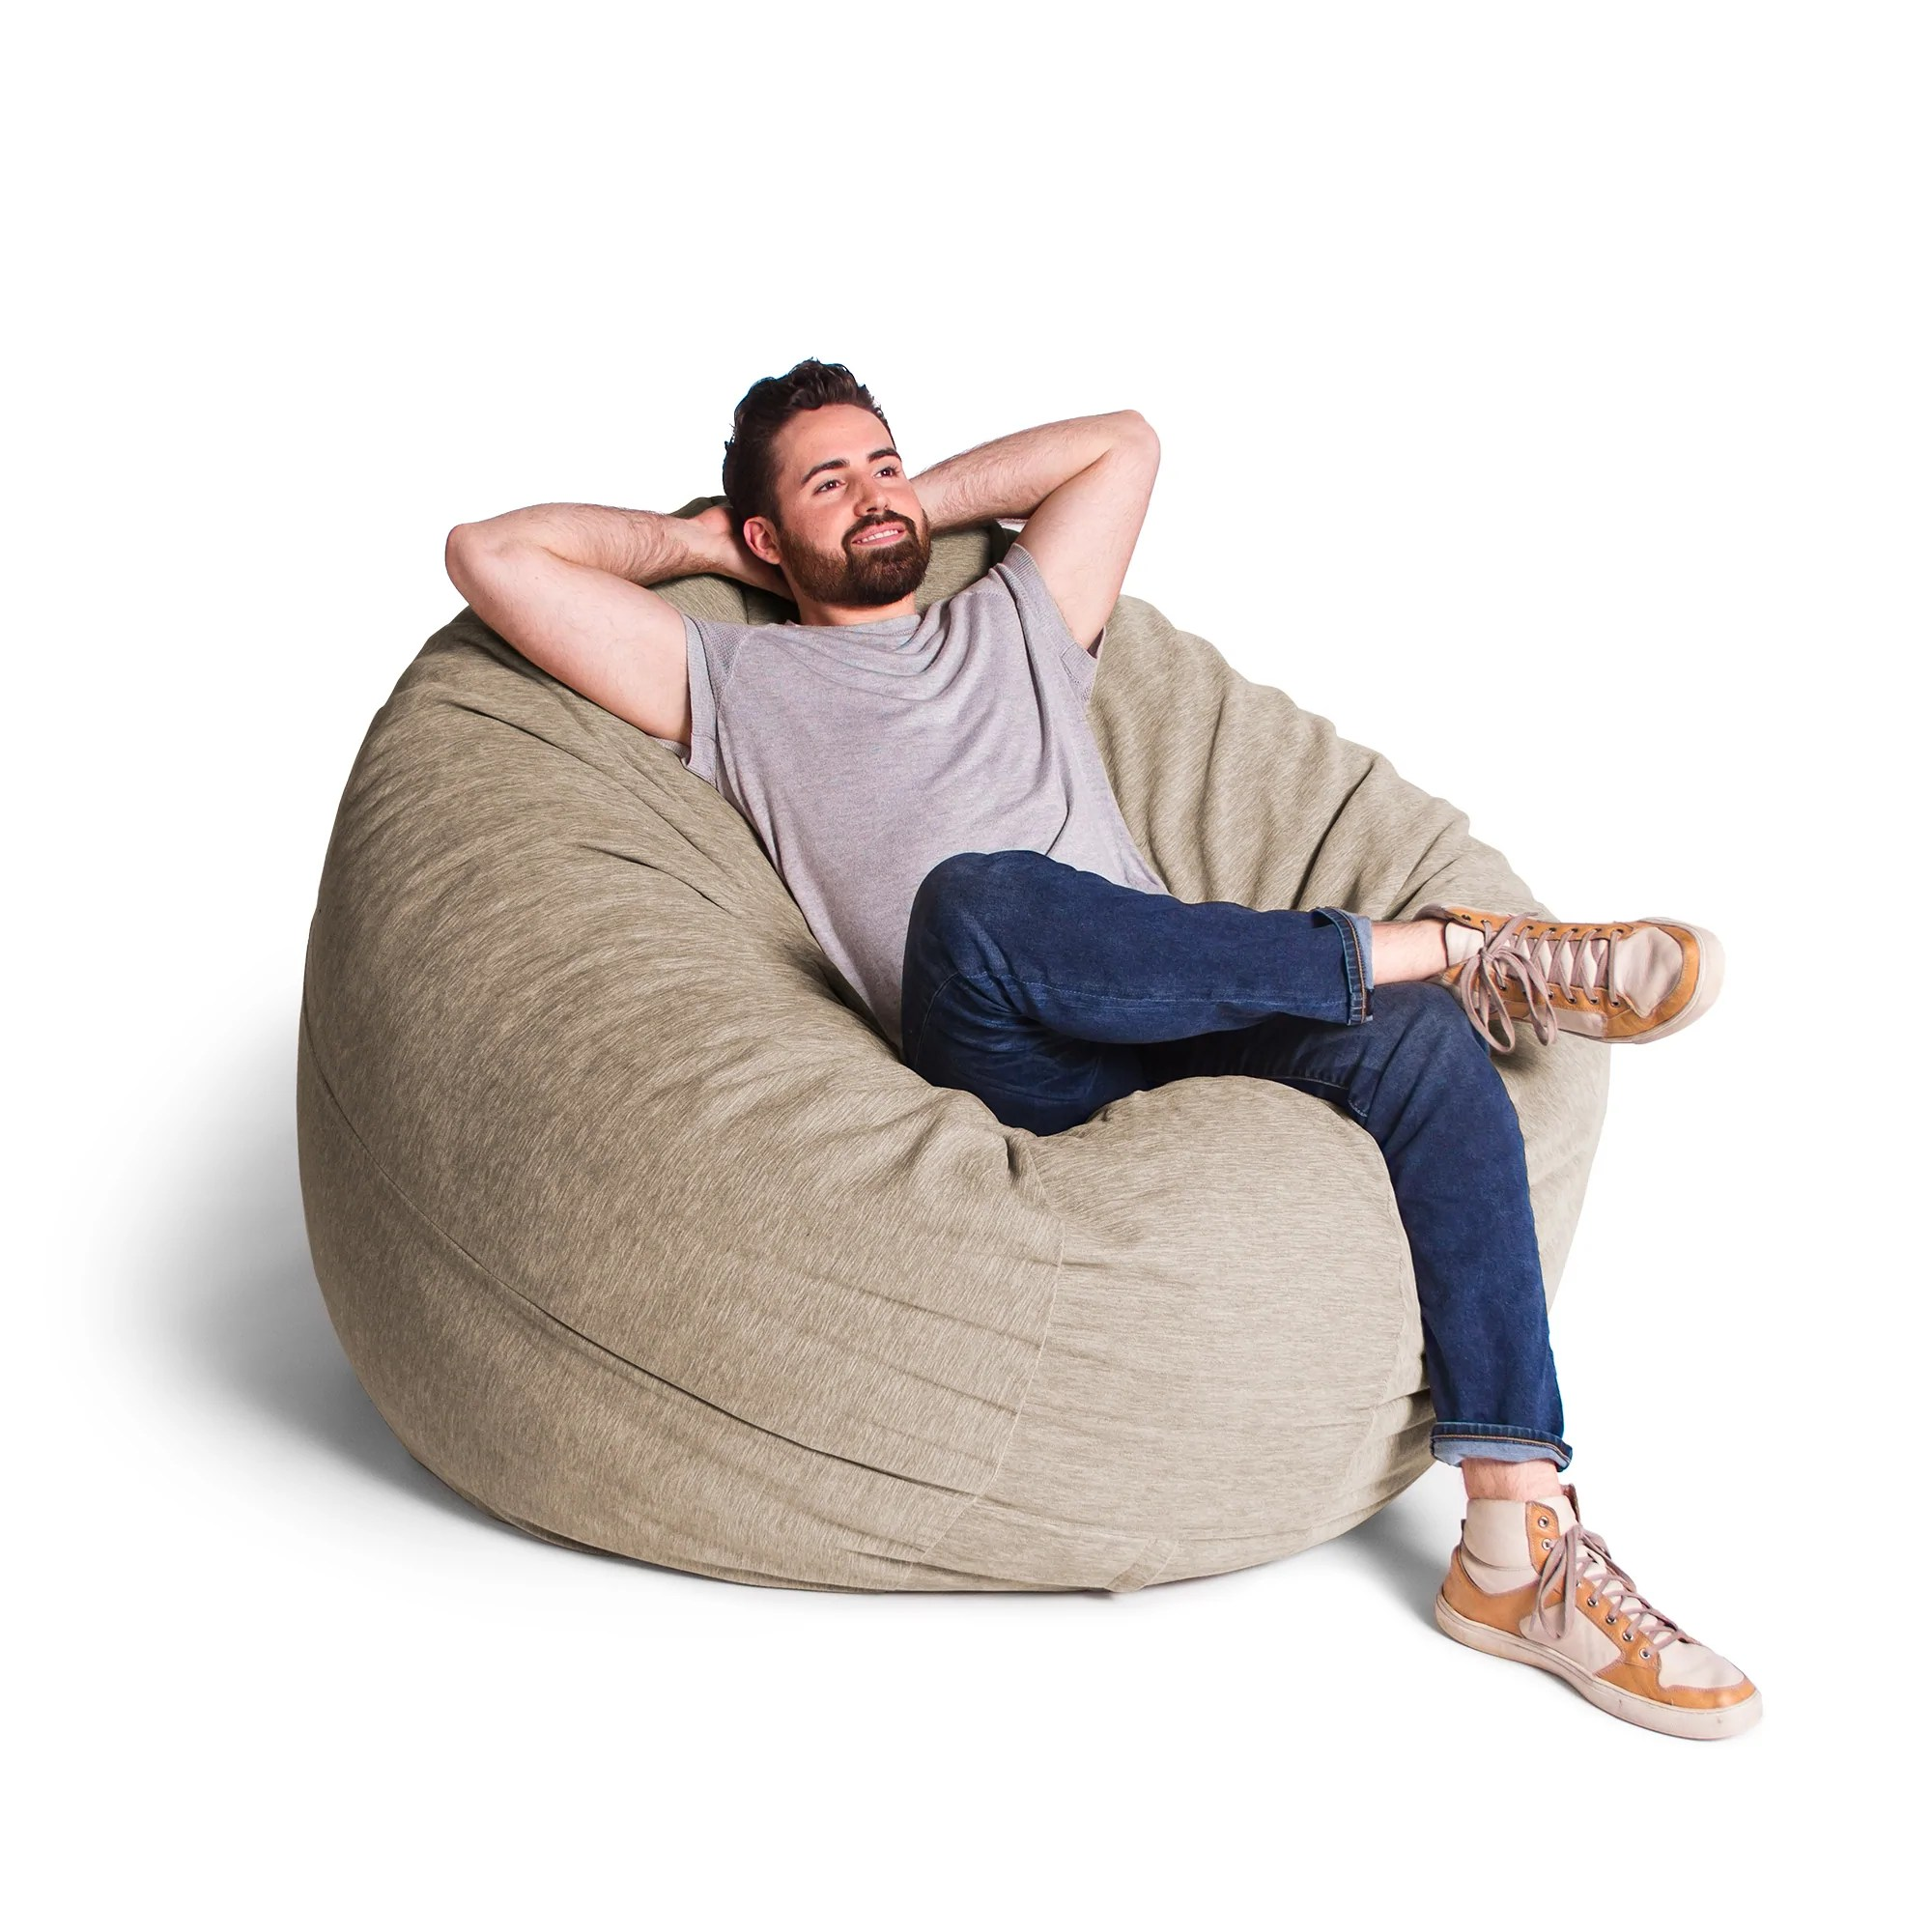 Bean Bags Chair Jaxx Classic Saxx 3 Foot Jaxx Sac Comfy Bean Bag Chairs